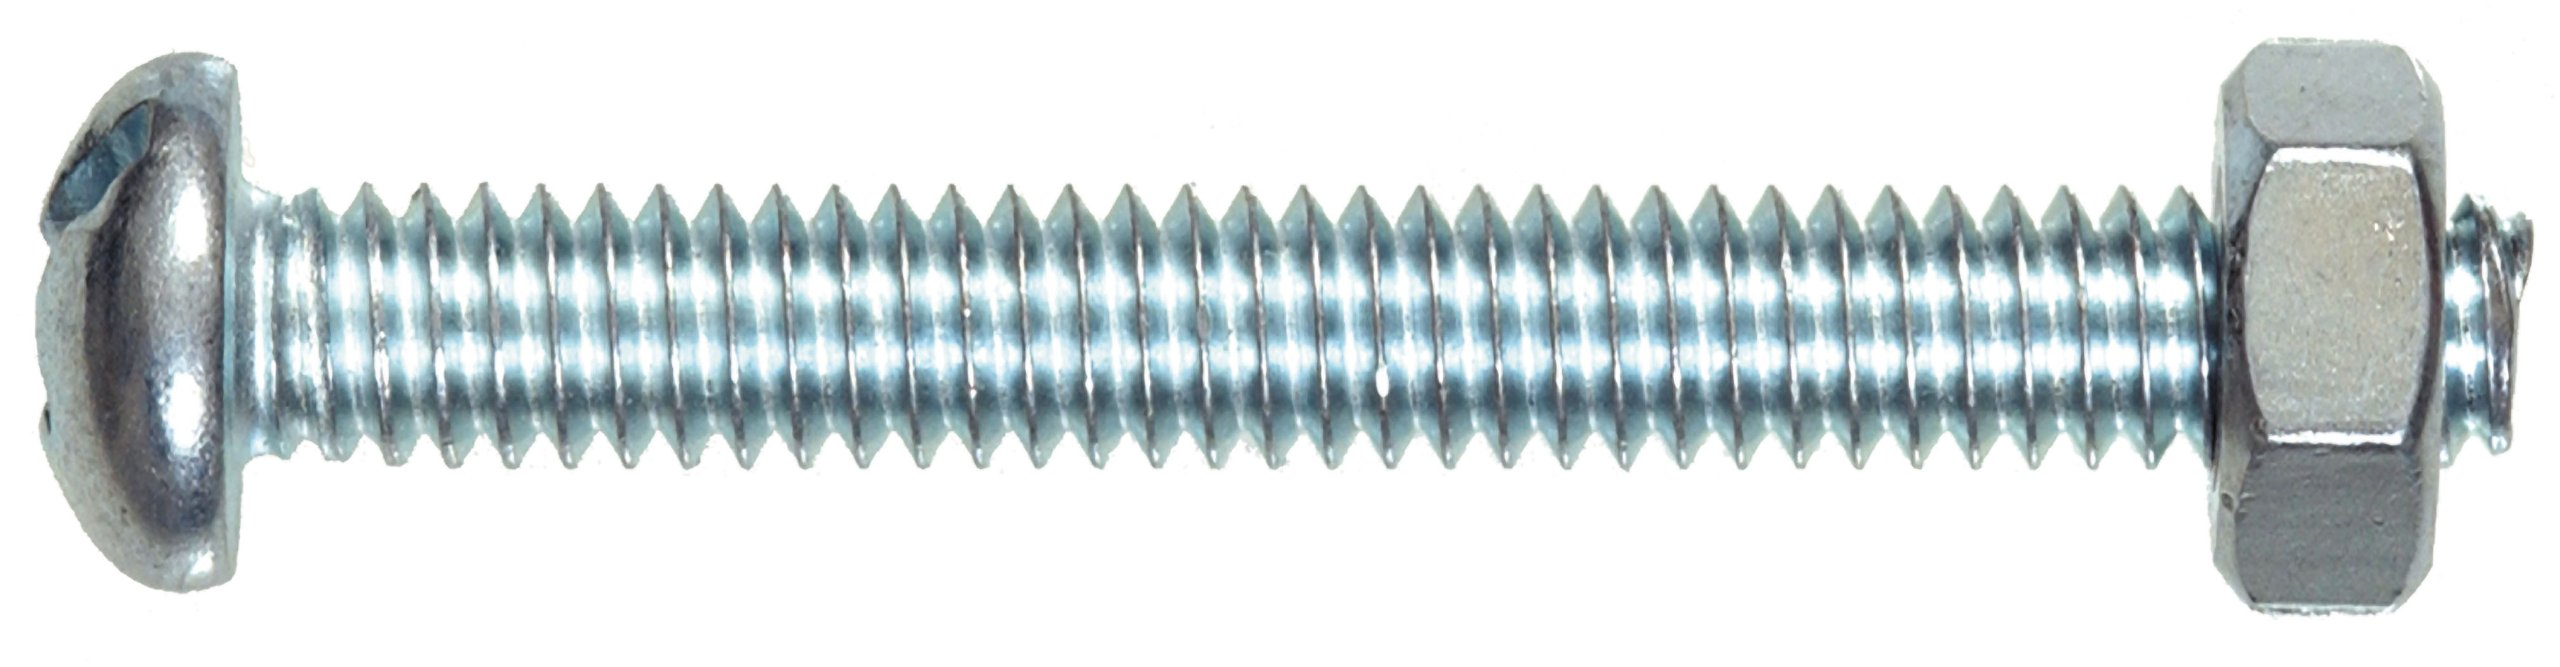 The Hillman Group 7680 Round Head Combo Machine Screw with Nut, 8-32-Inch x 2-Inch, 5-Pack